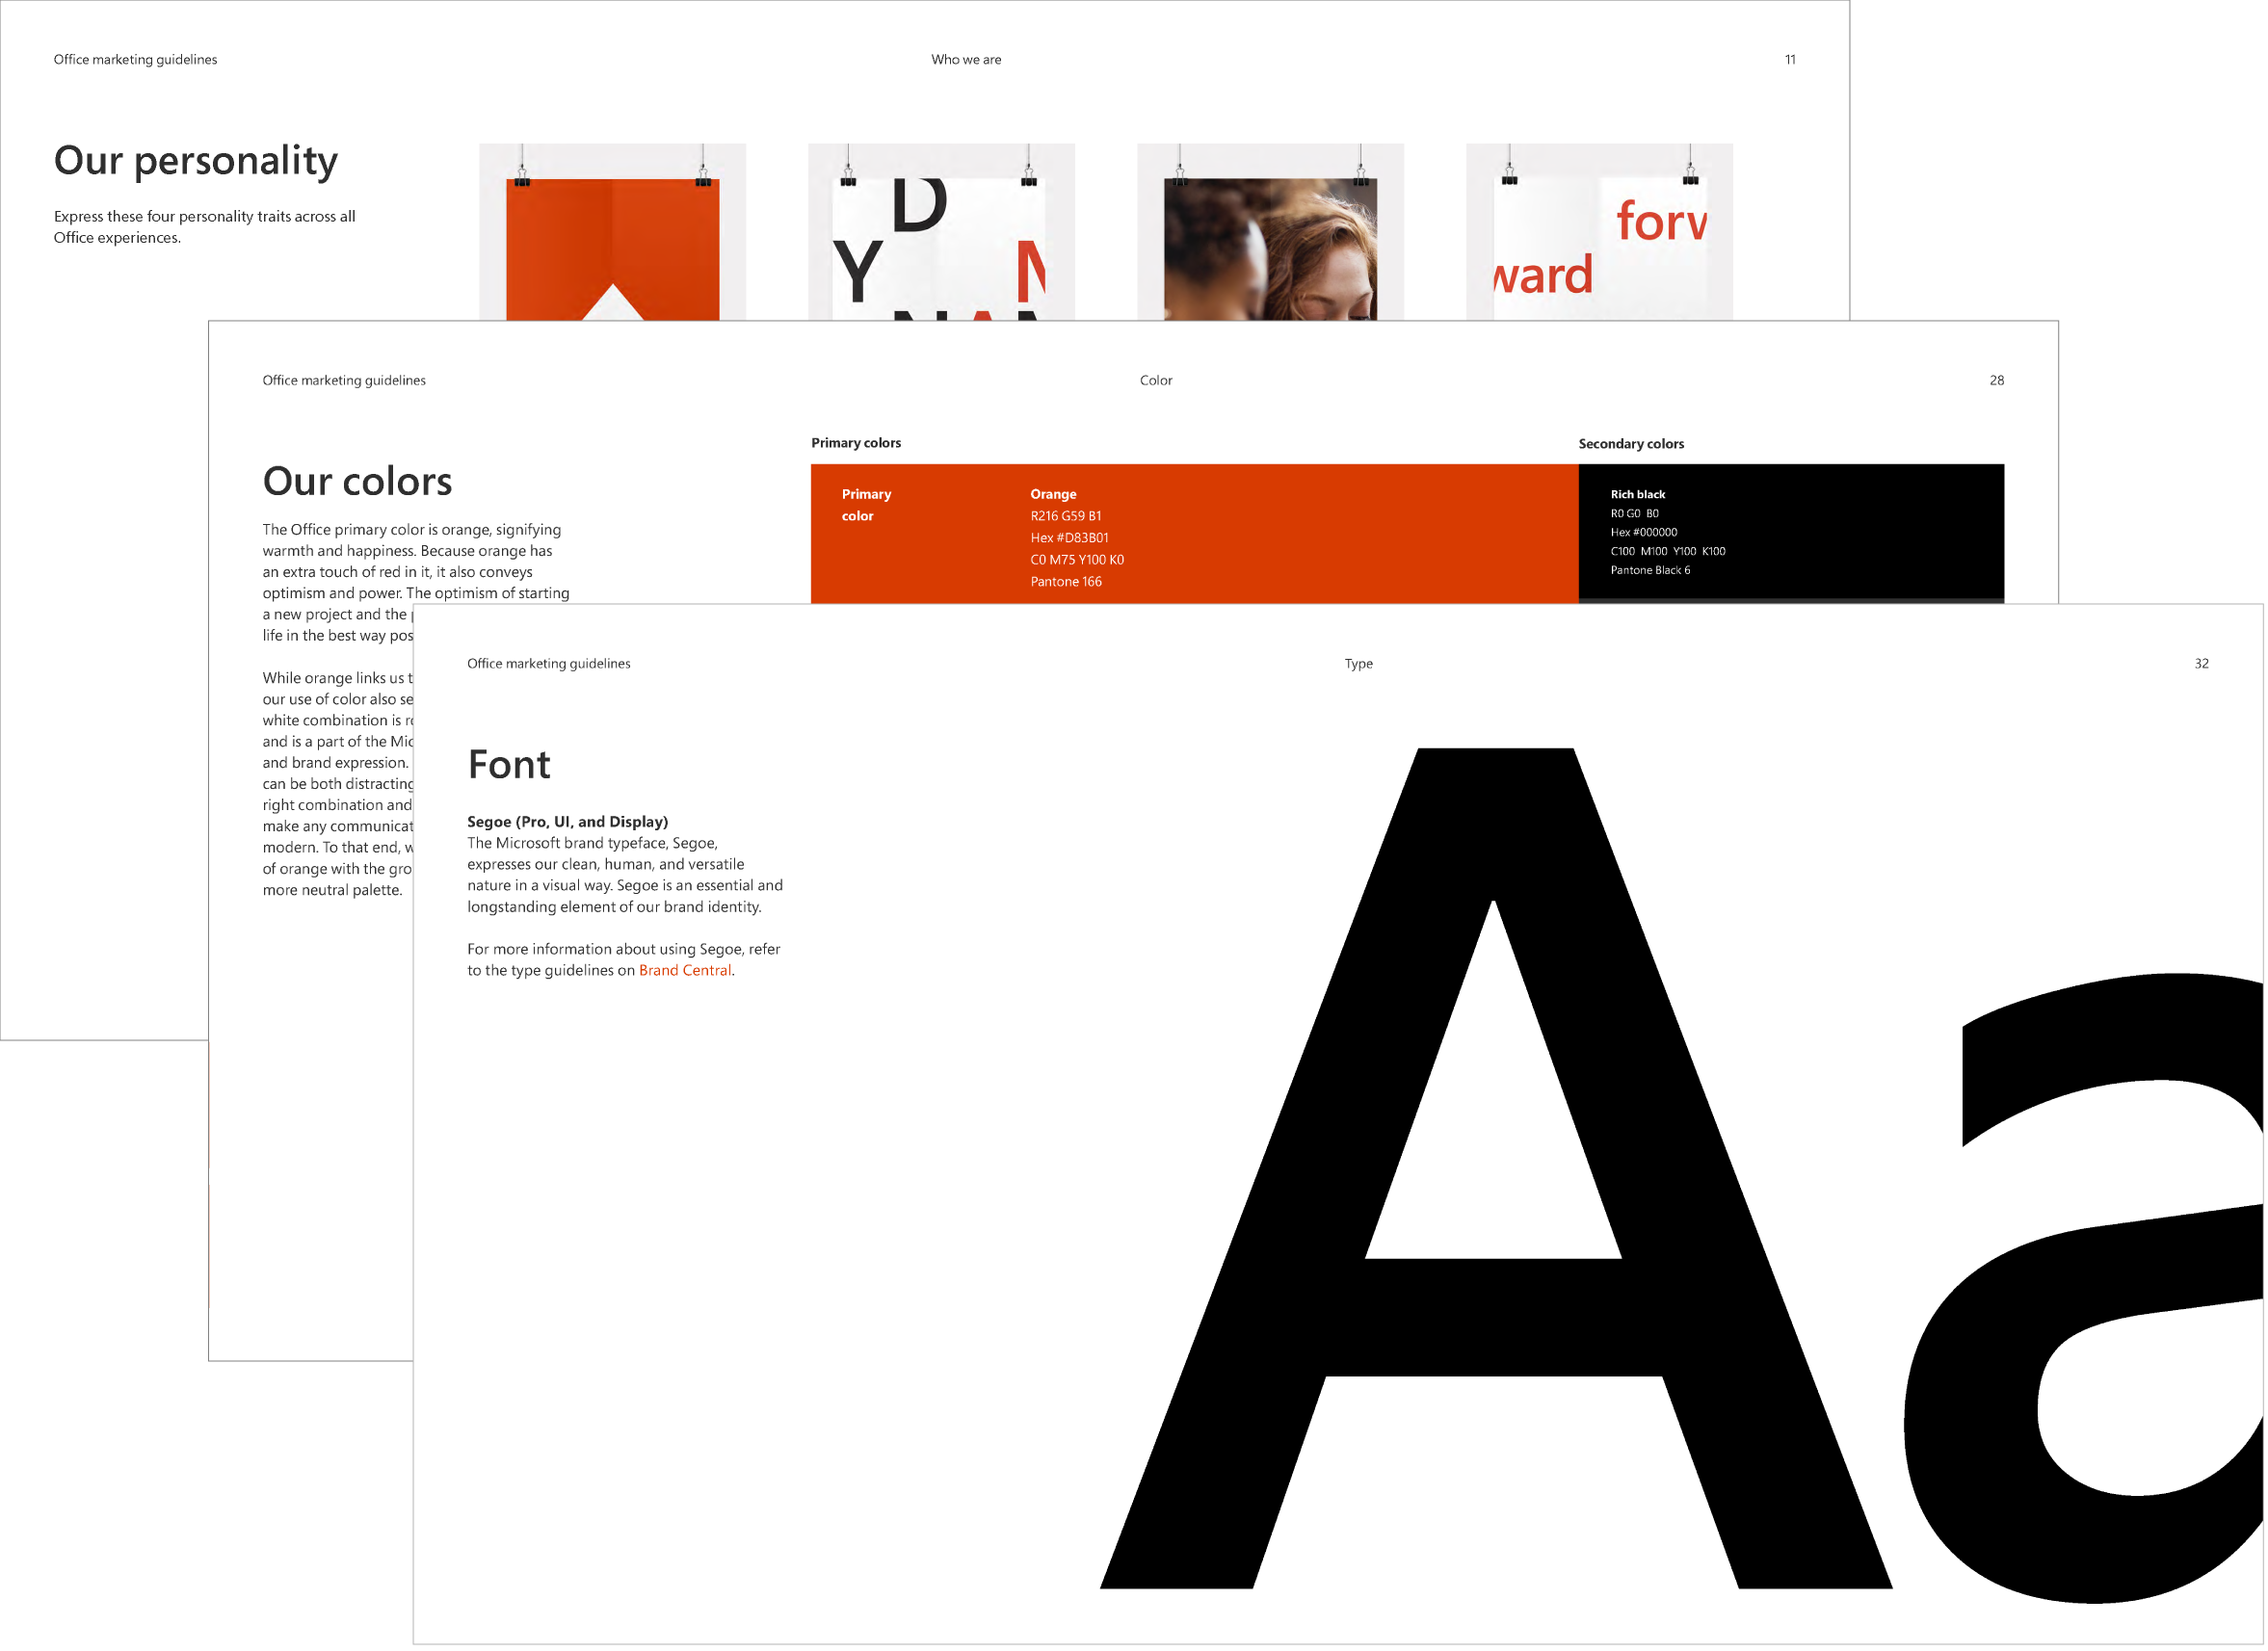 Office brand guideline examples including personality, colors, and font.